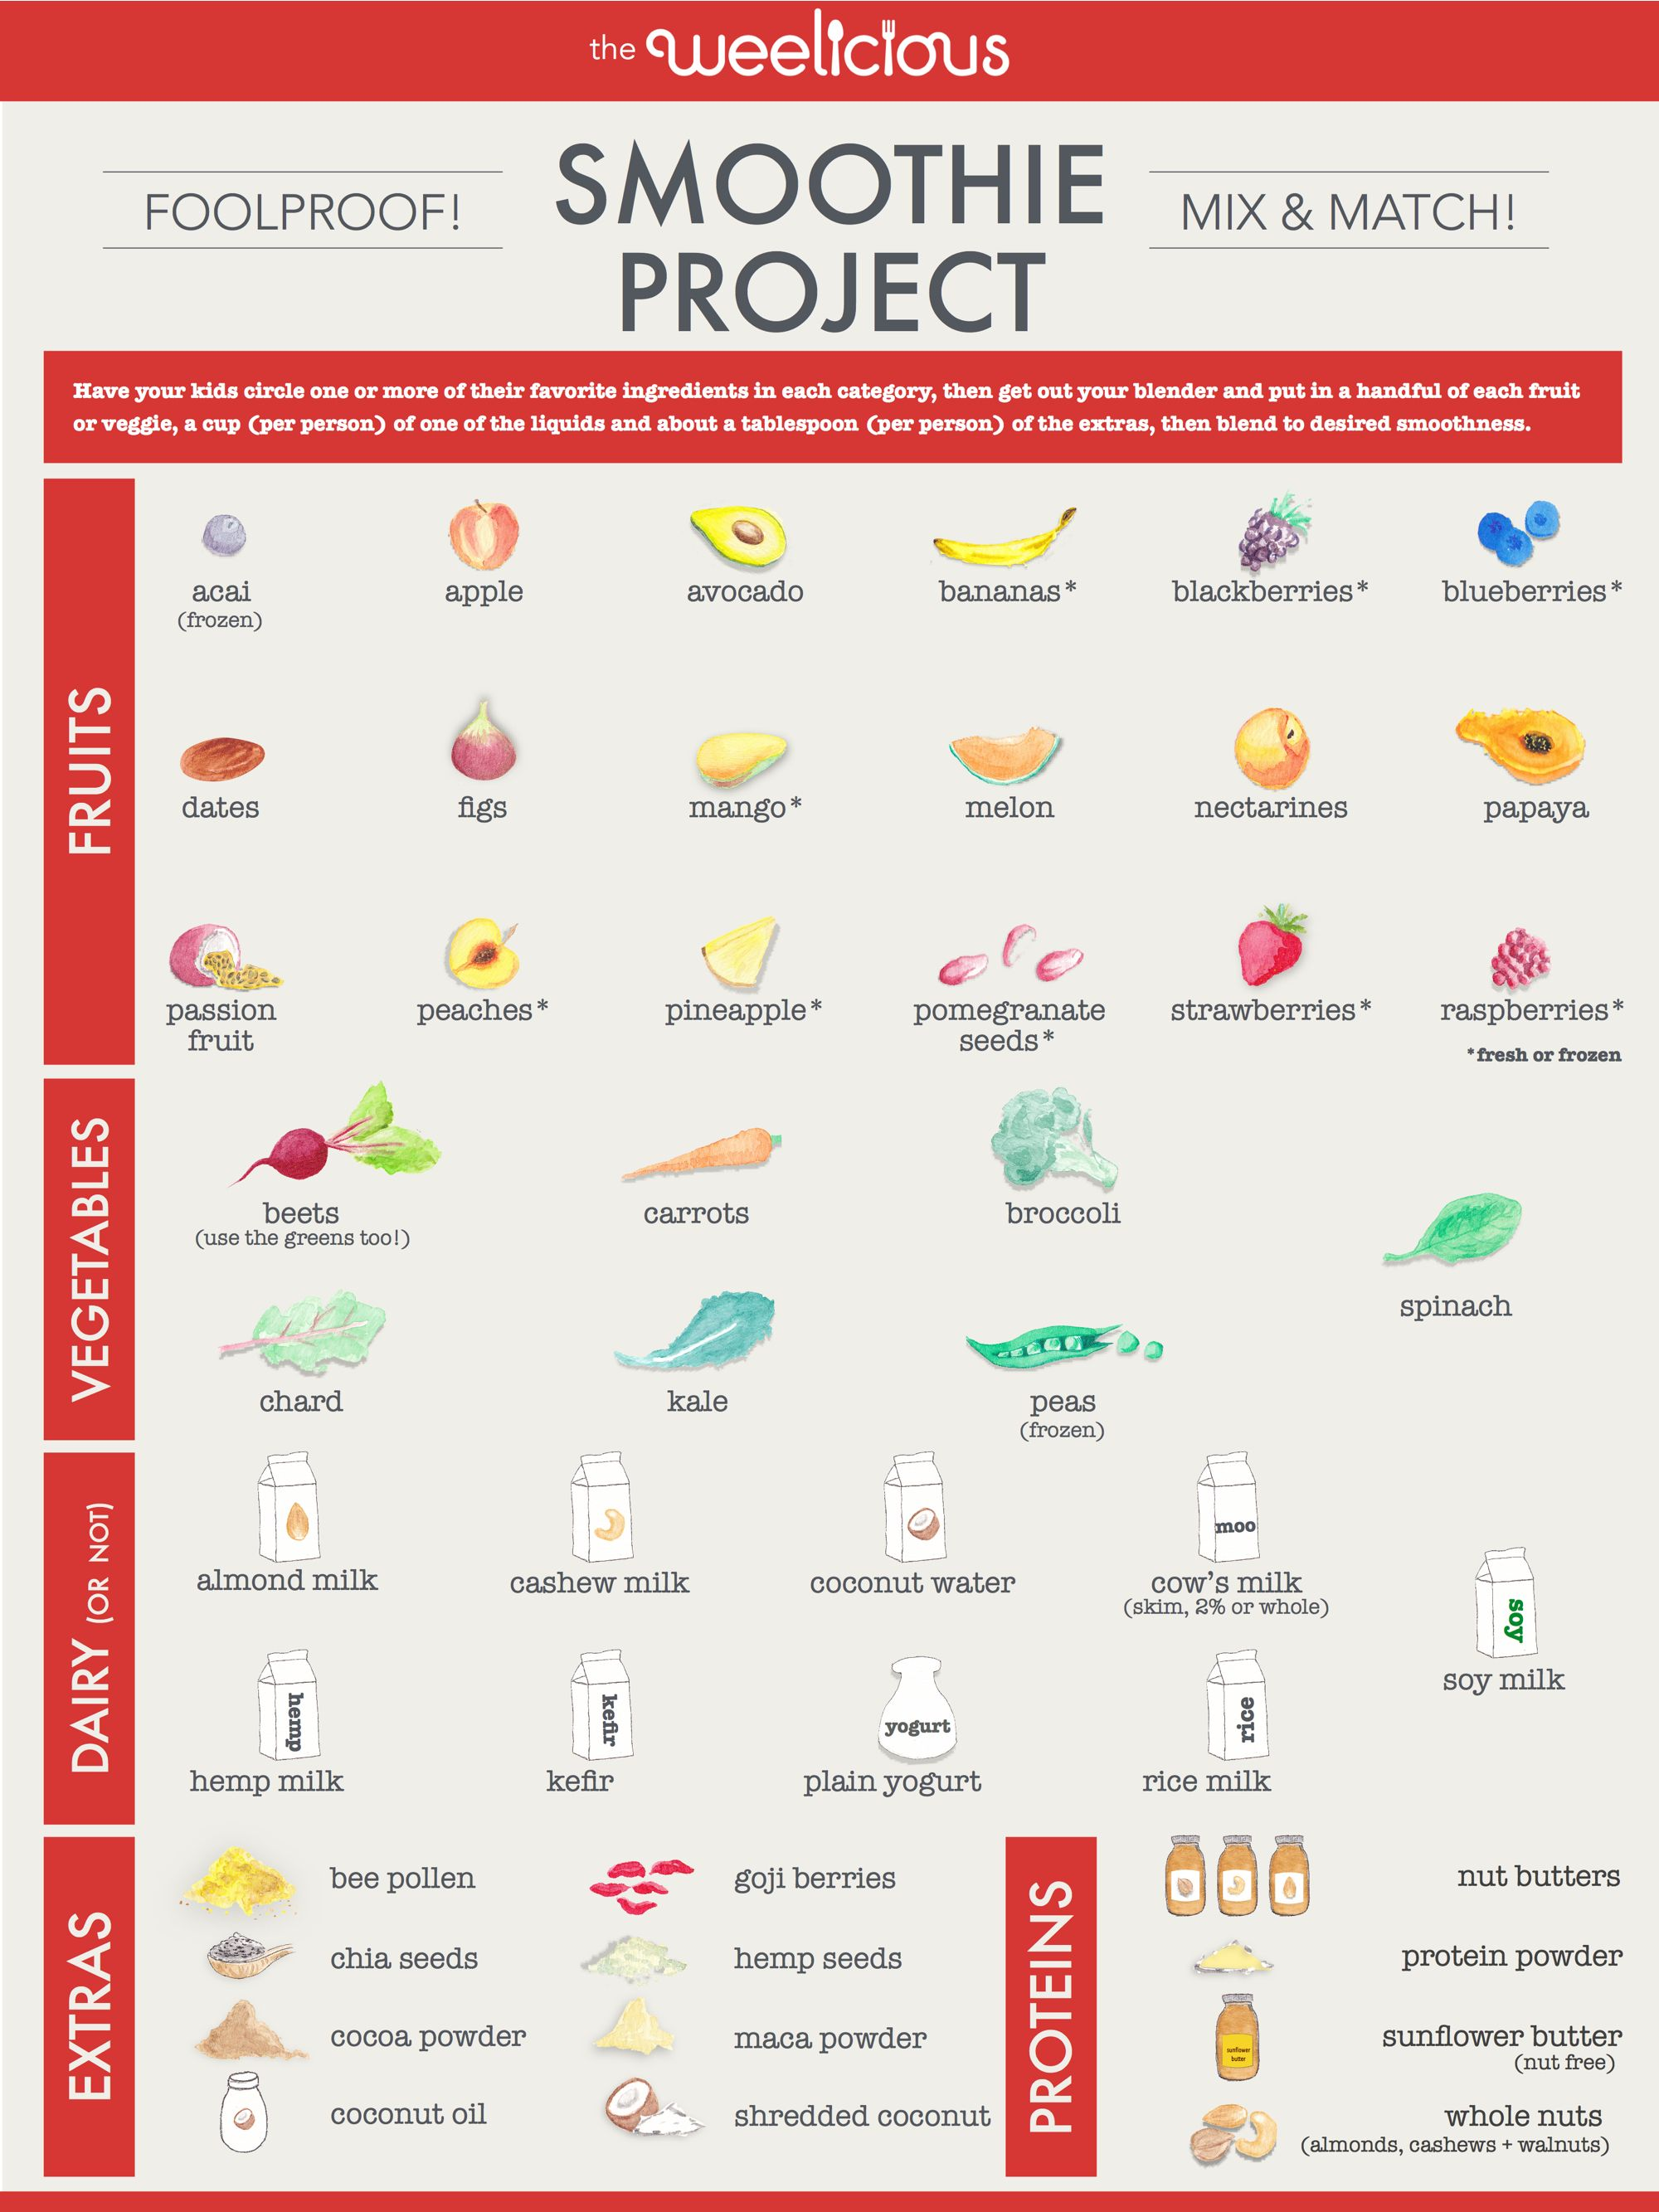 Smoothie project pinterest healthy smoothies smoothies and pdf check out this handy smoothie project pdf from weelicious great ideas about how to get kids drinking healthy smoothies to get their nutrition forumfinder Gallery